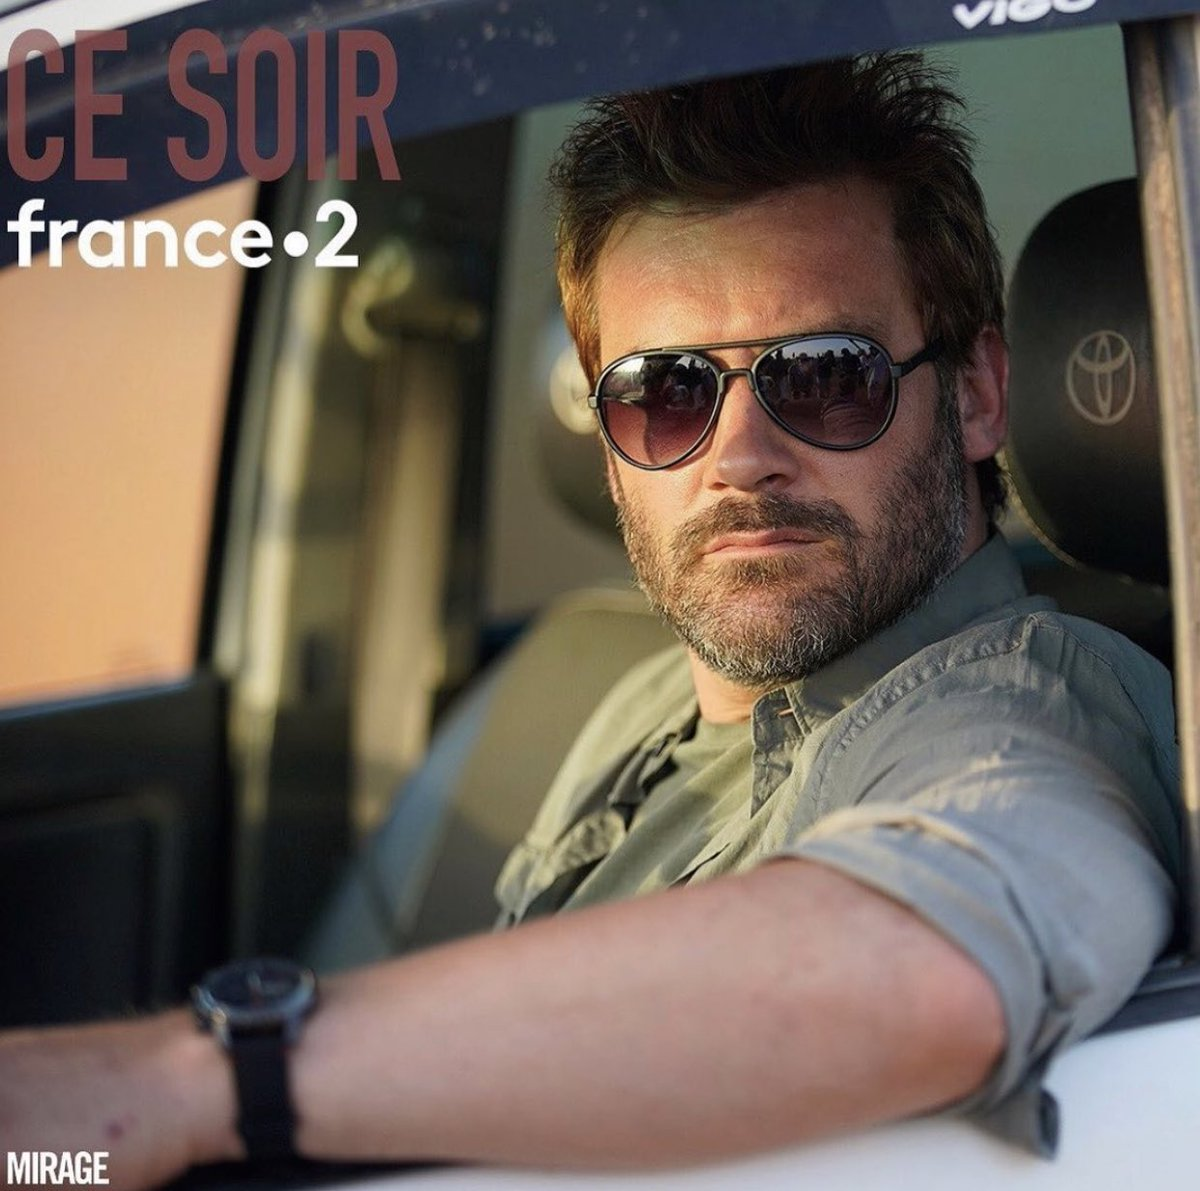 Tonight!  France2 #mirageseries episode 3  : #clivestanden #WOW<br>http://pic.twitter.com/GR1050OSgt